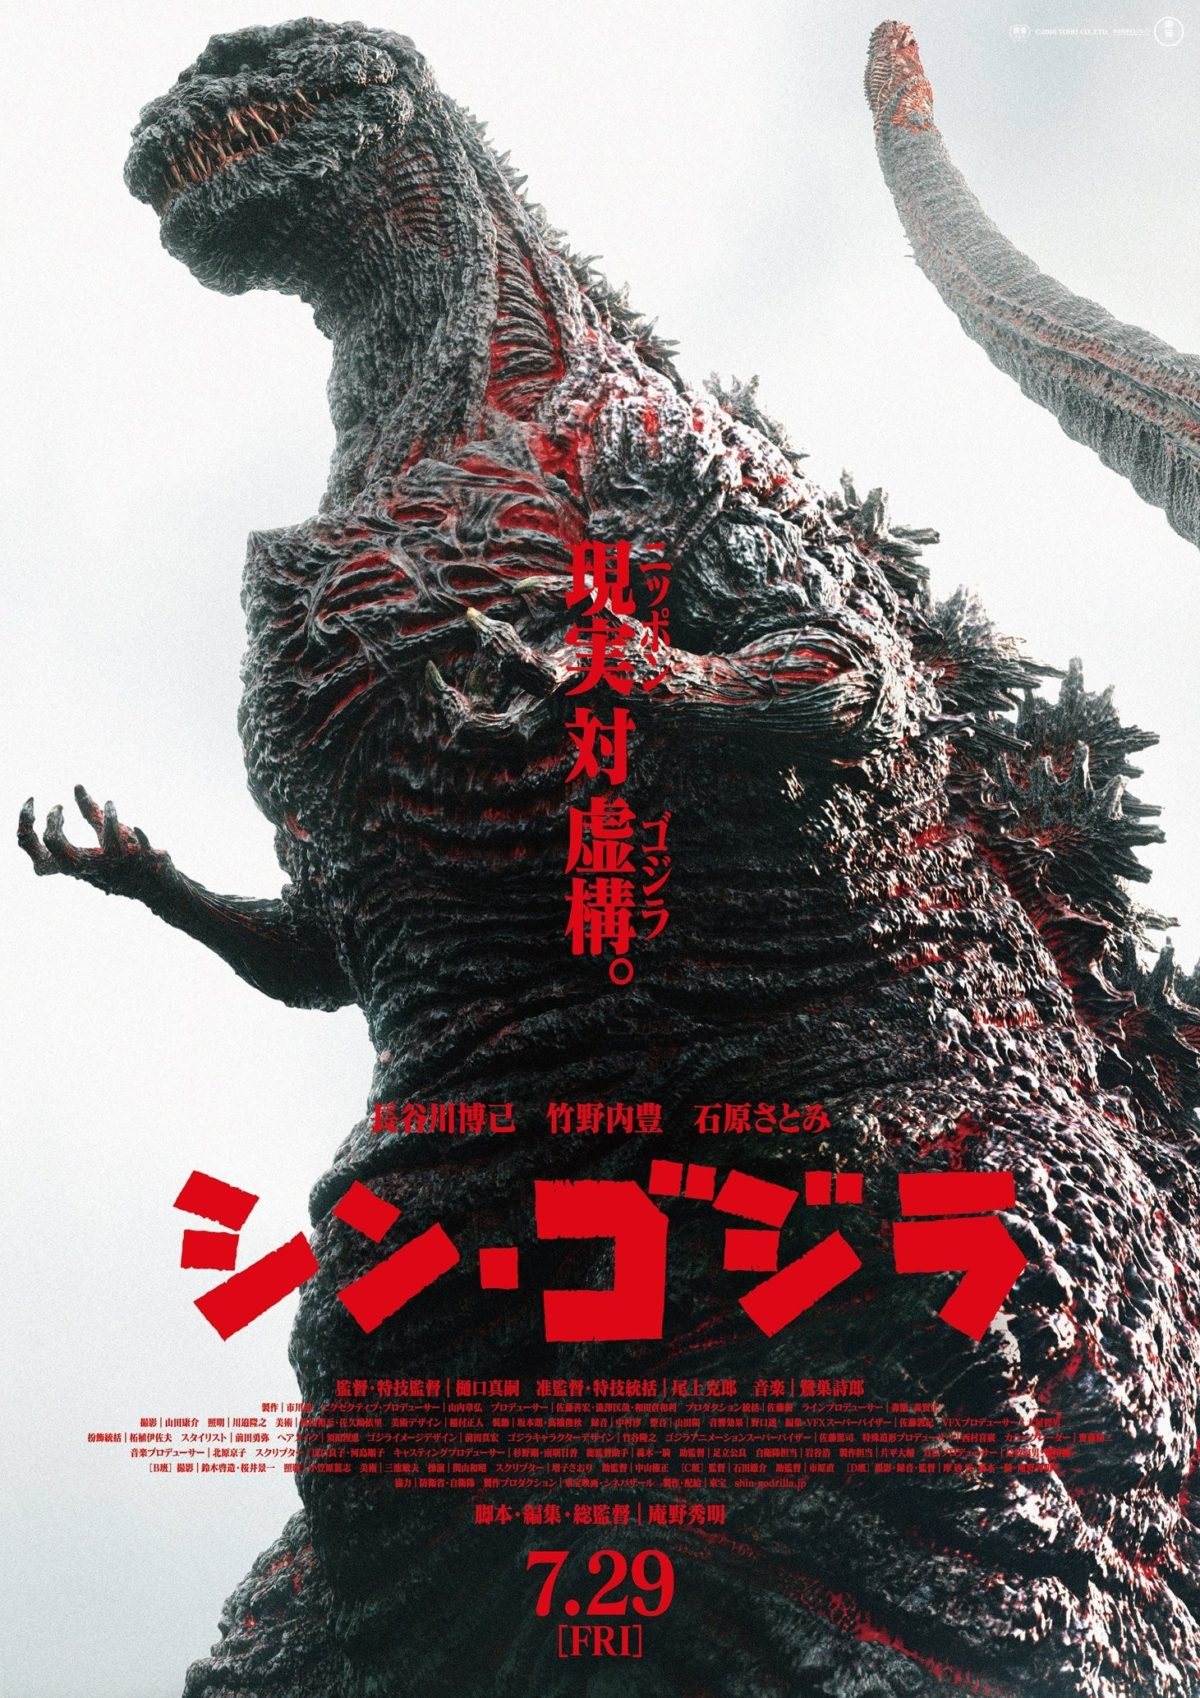 What I'm Watching: Shin Godzilla